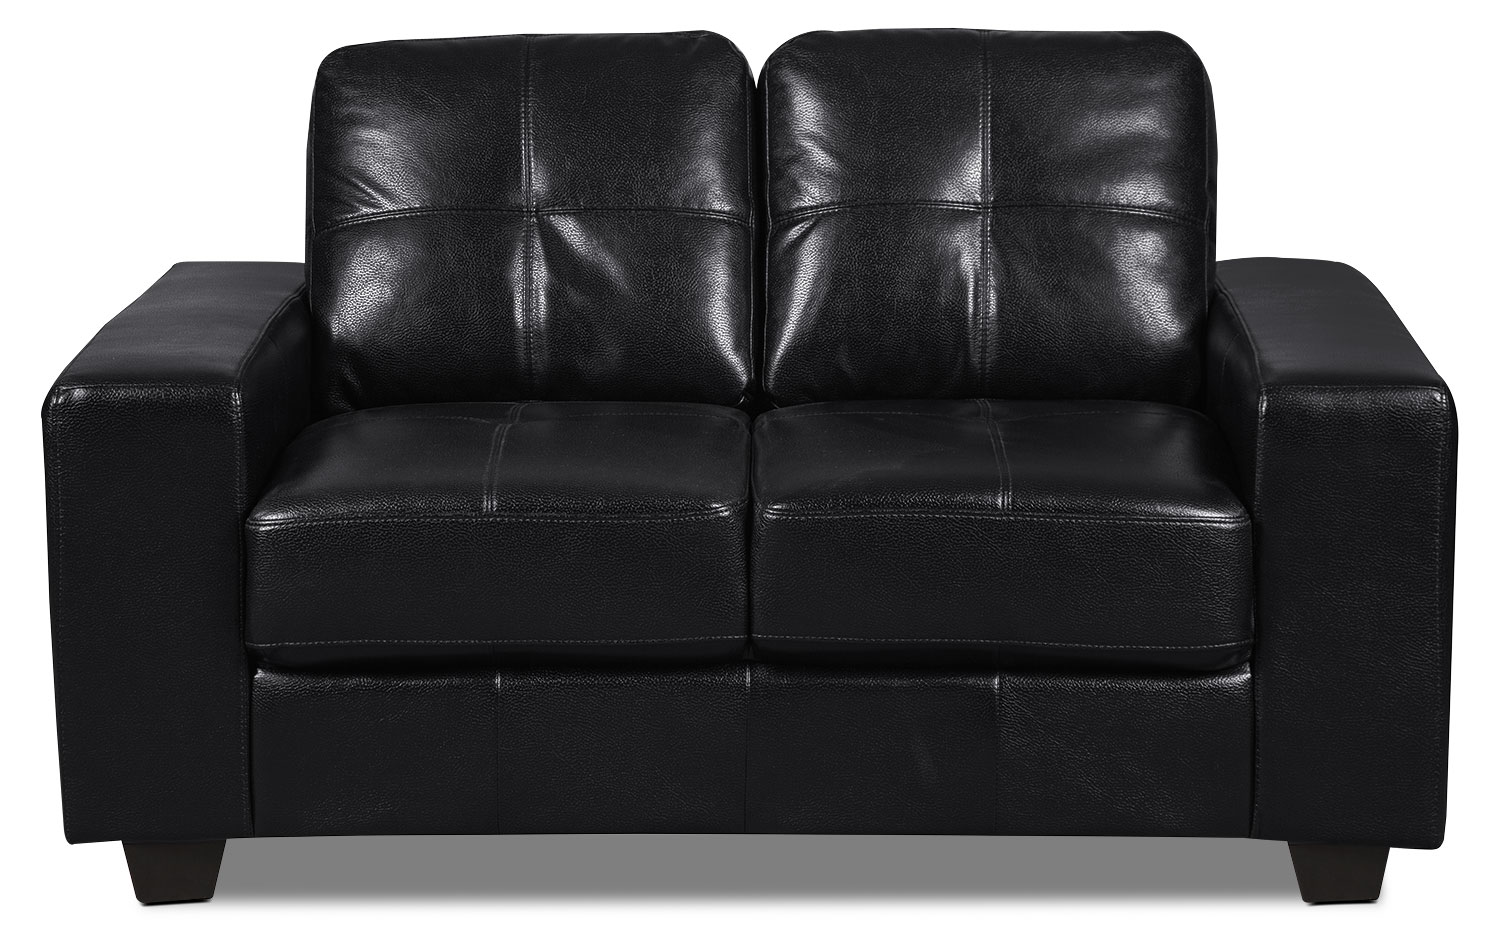 Costa Leather-Look Fabric Loveseat – Black